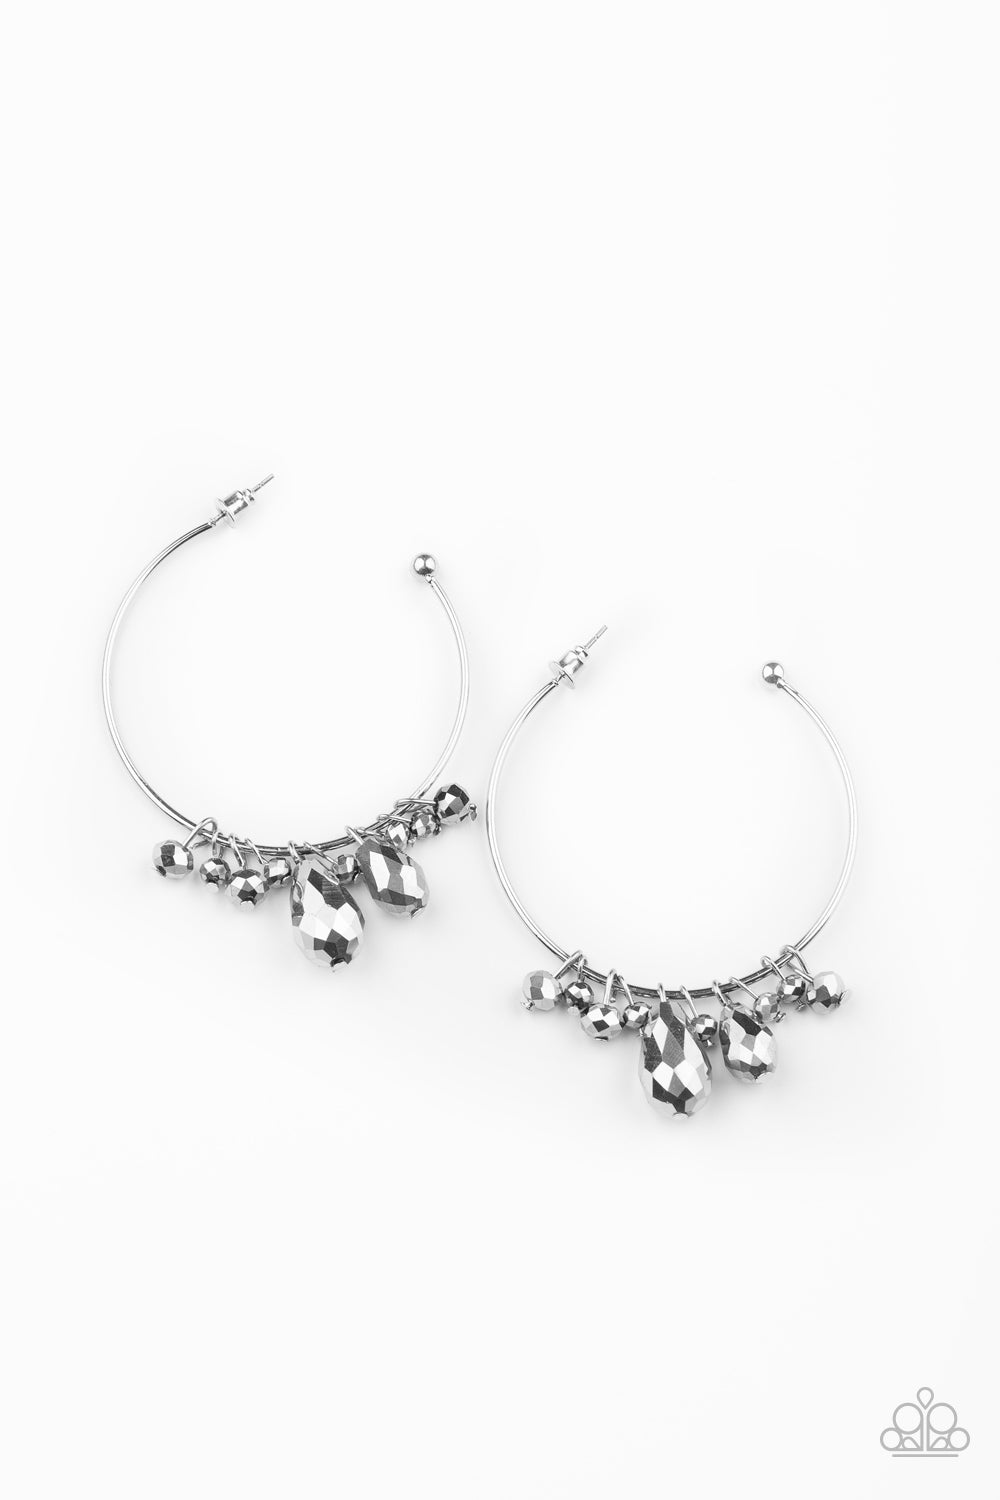 five-dollar-jewelry-dazzling-downpour-silver-earrings-paparazzi-accessories